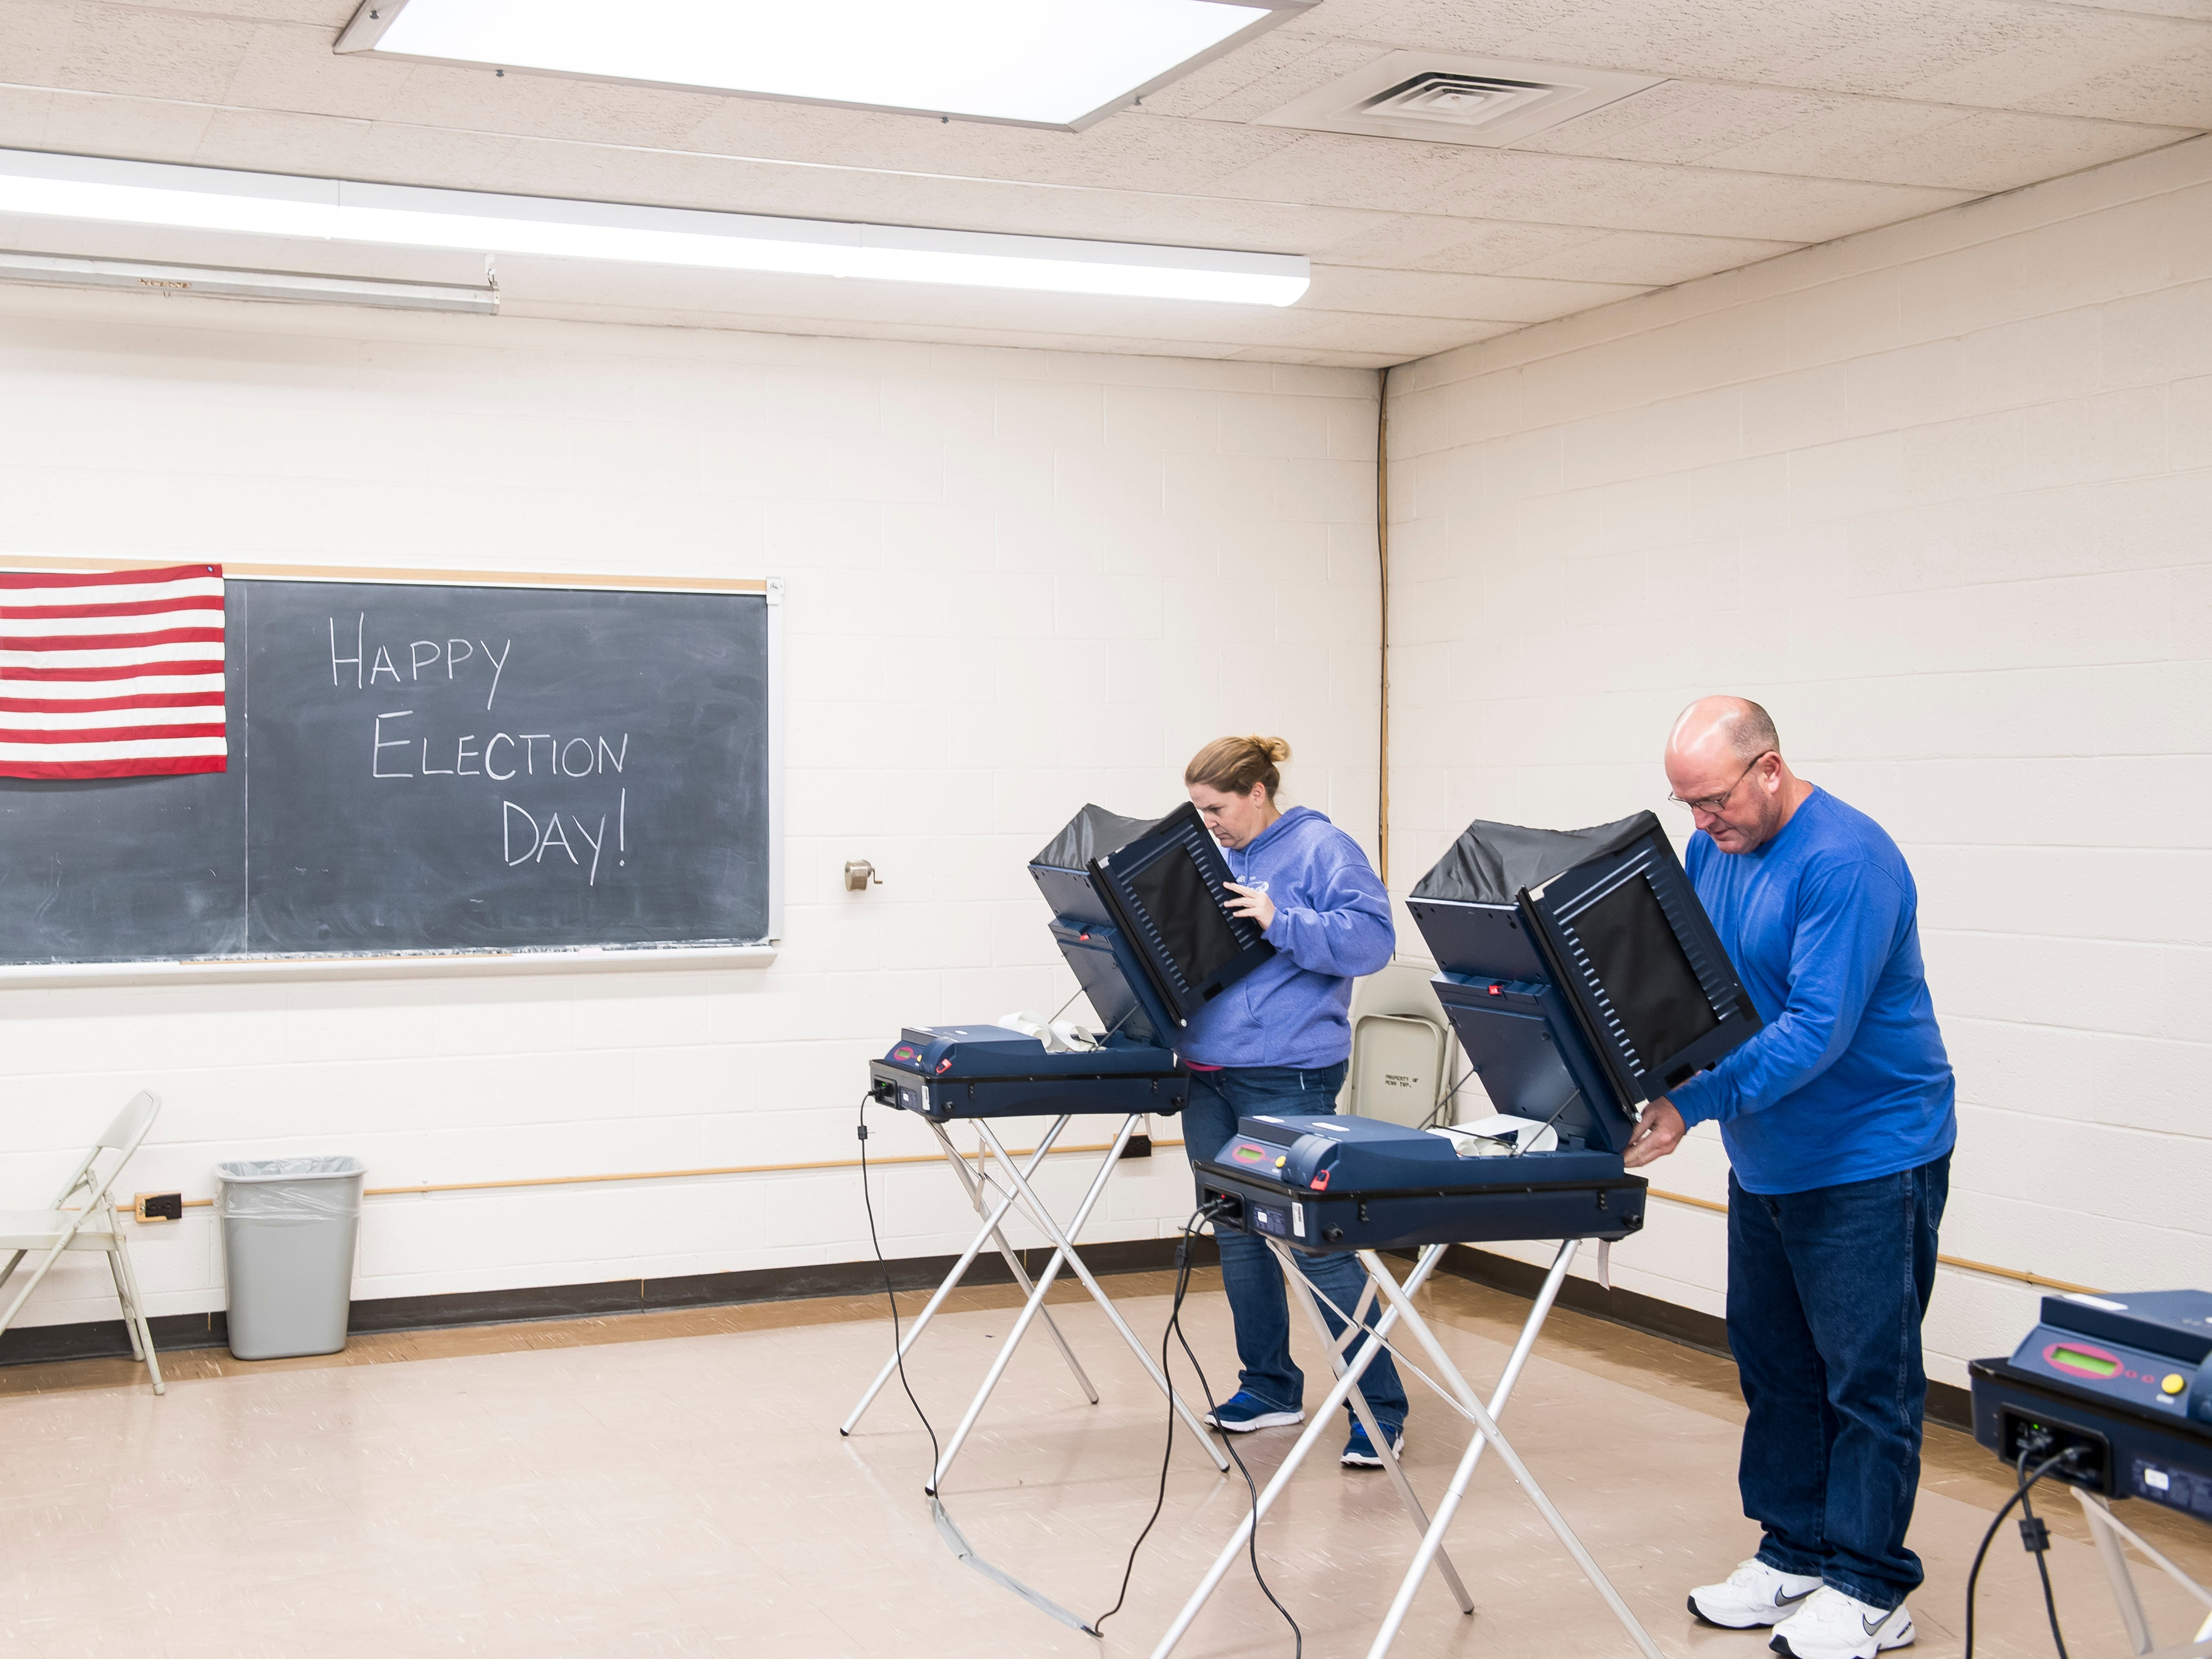 Christy and Brad Hill cast their ballots at the Penn Township Municipal Building polling venue on Tuesday, November 6, 2018.